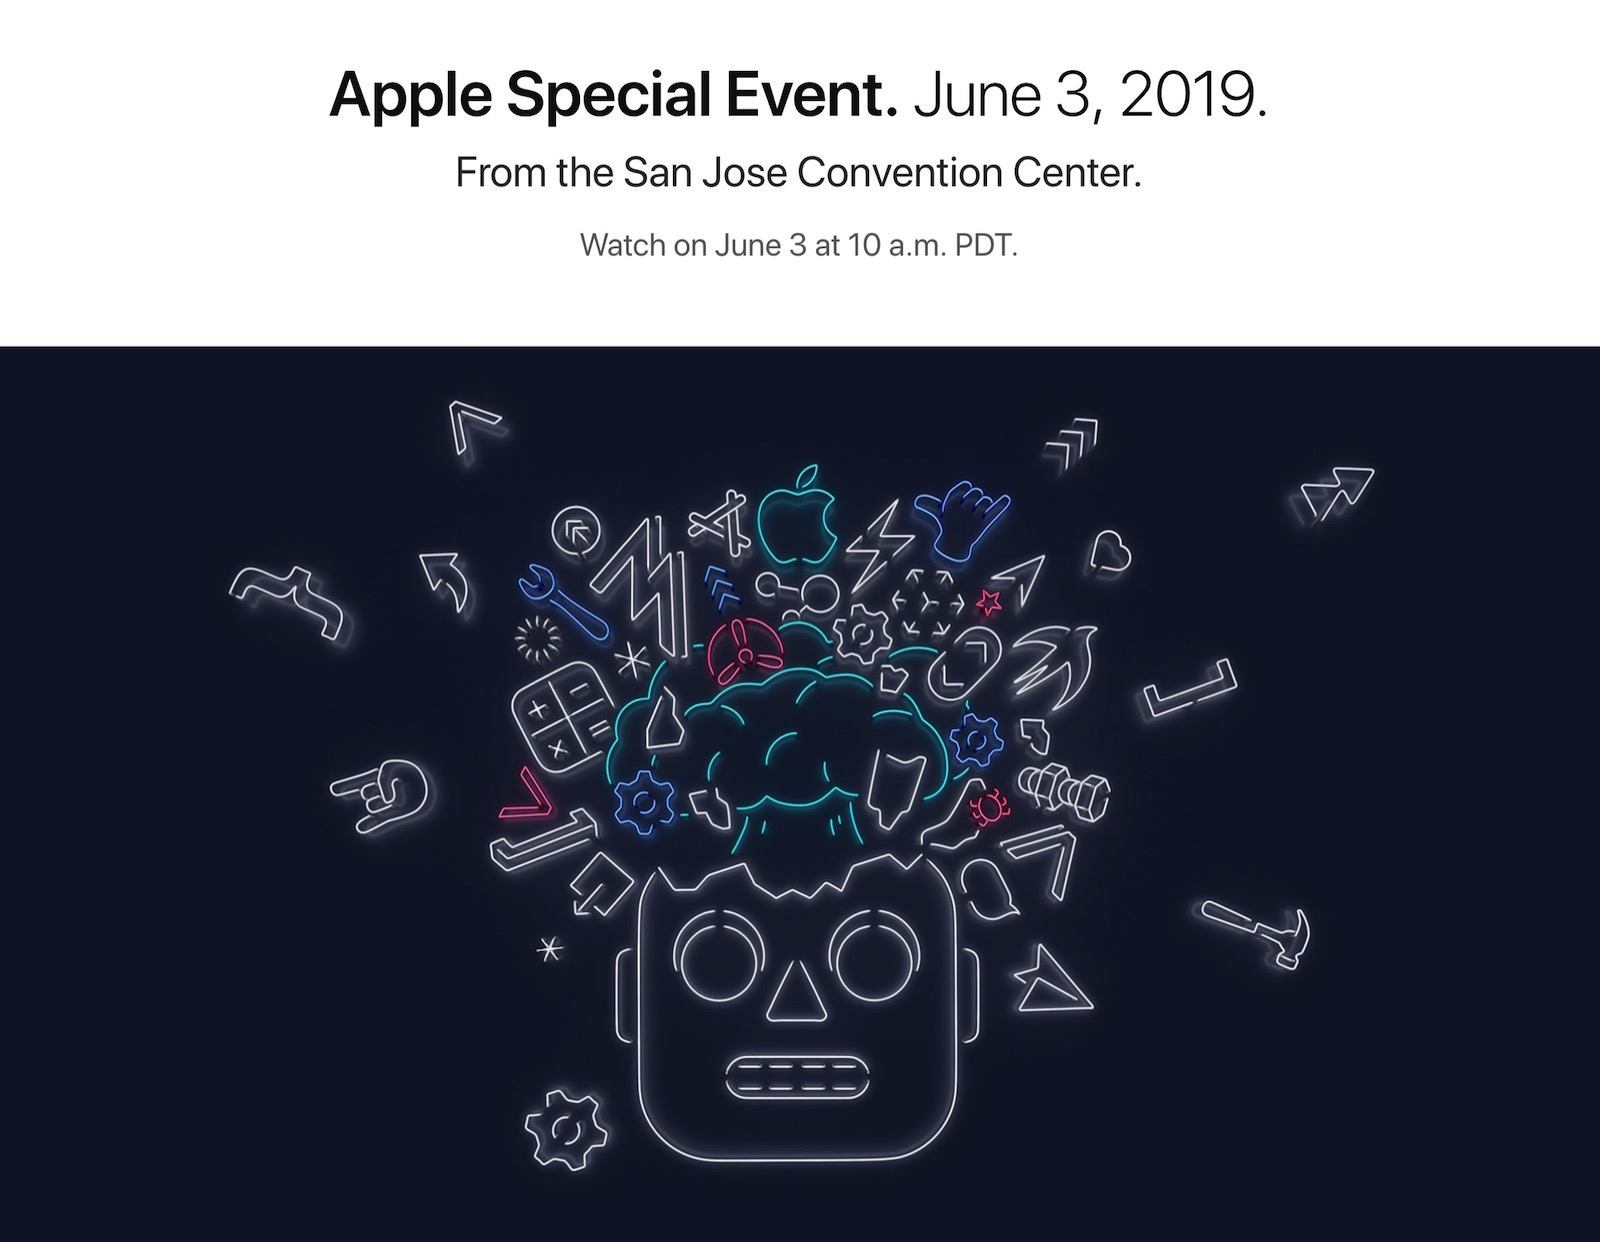 Apple WWDC19 Live Streaming